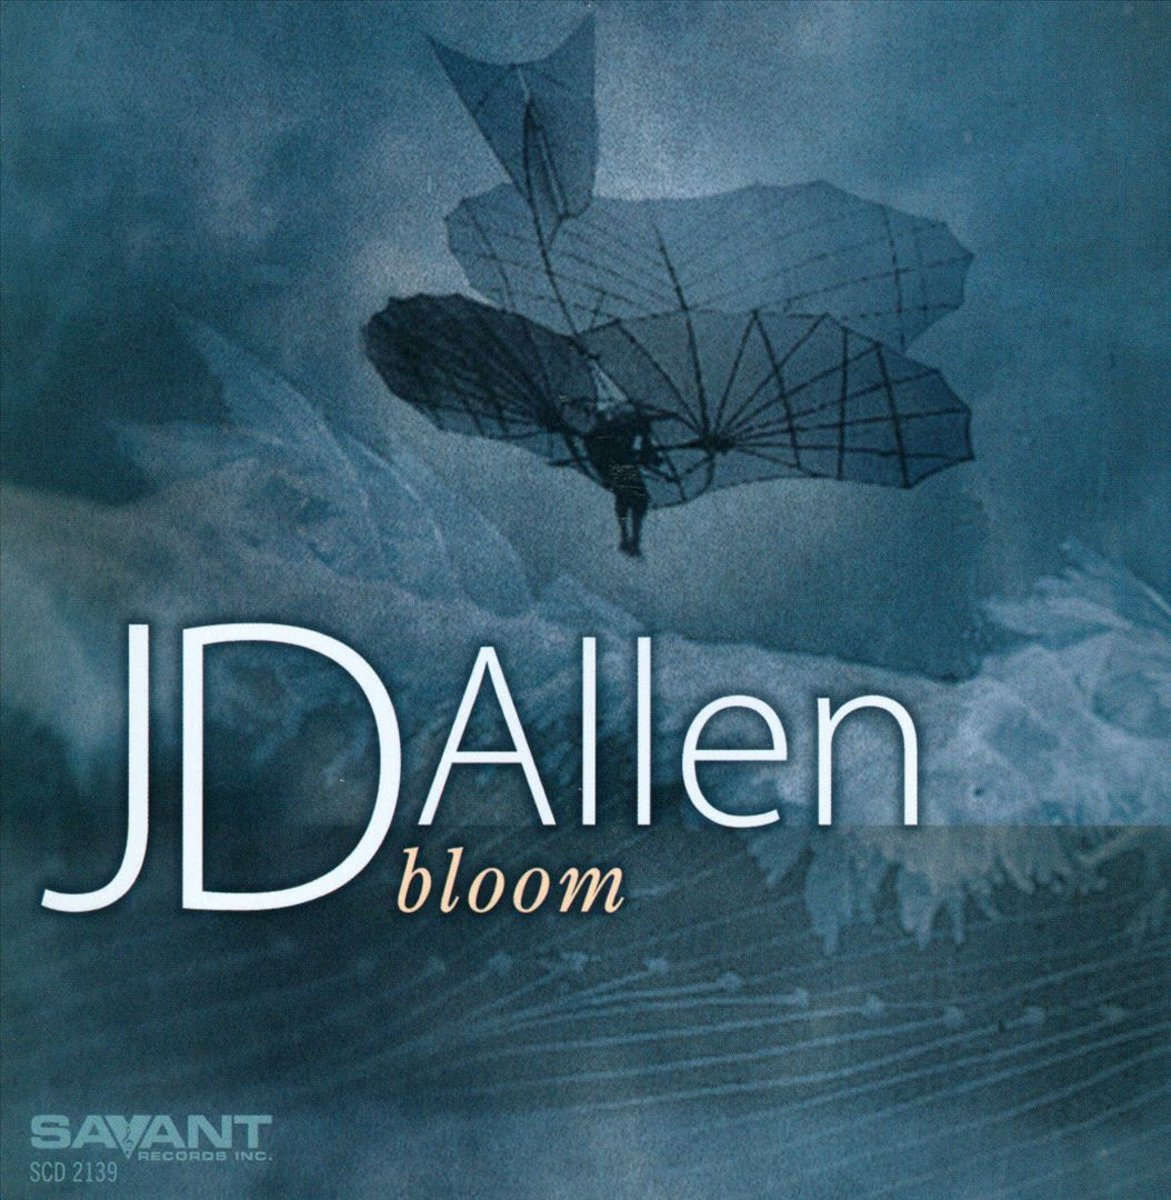 Jd Allen Jd Allen. Bloom jd коллекция дефолт синий